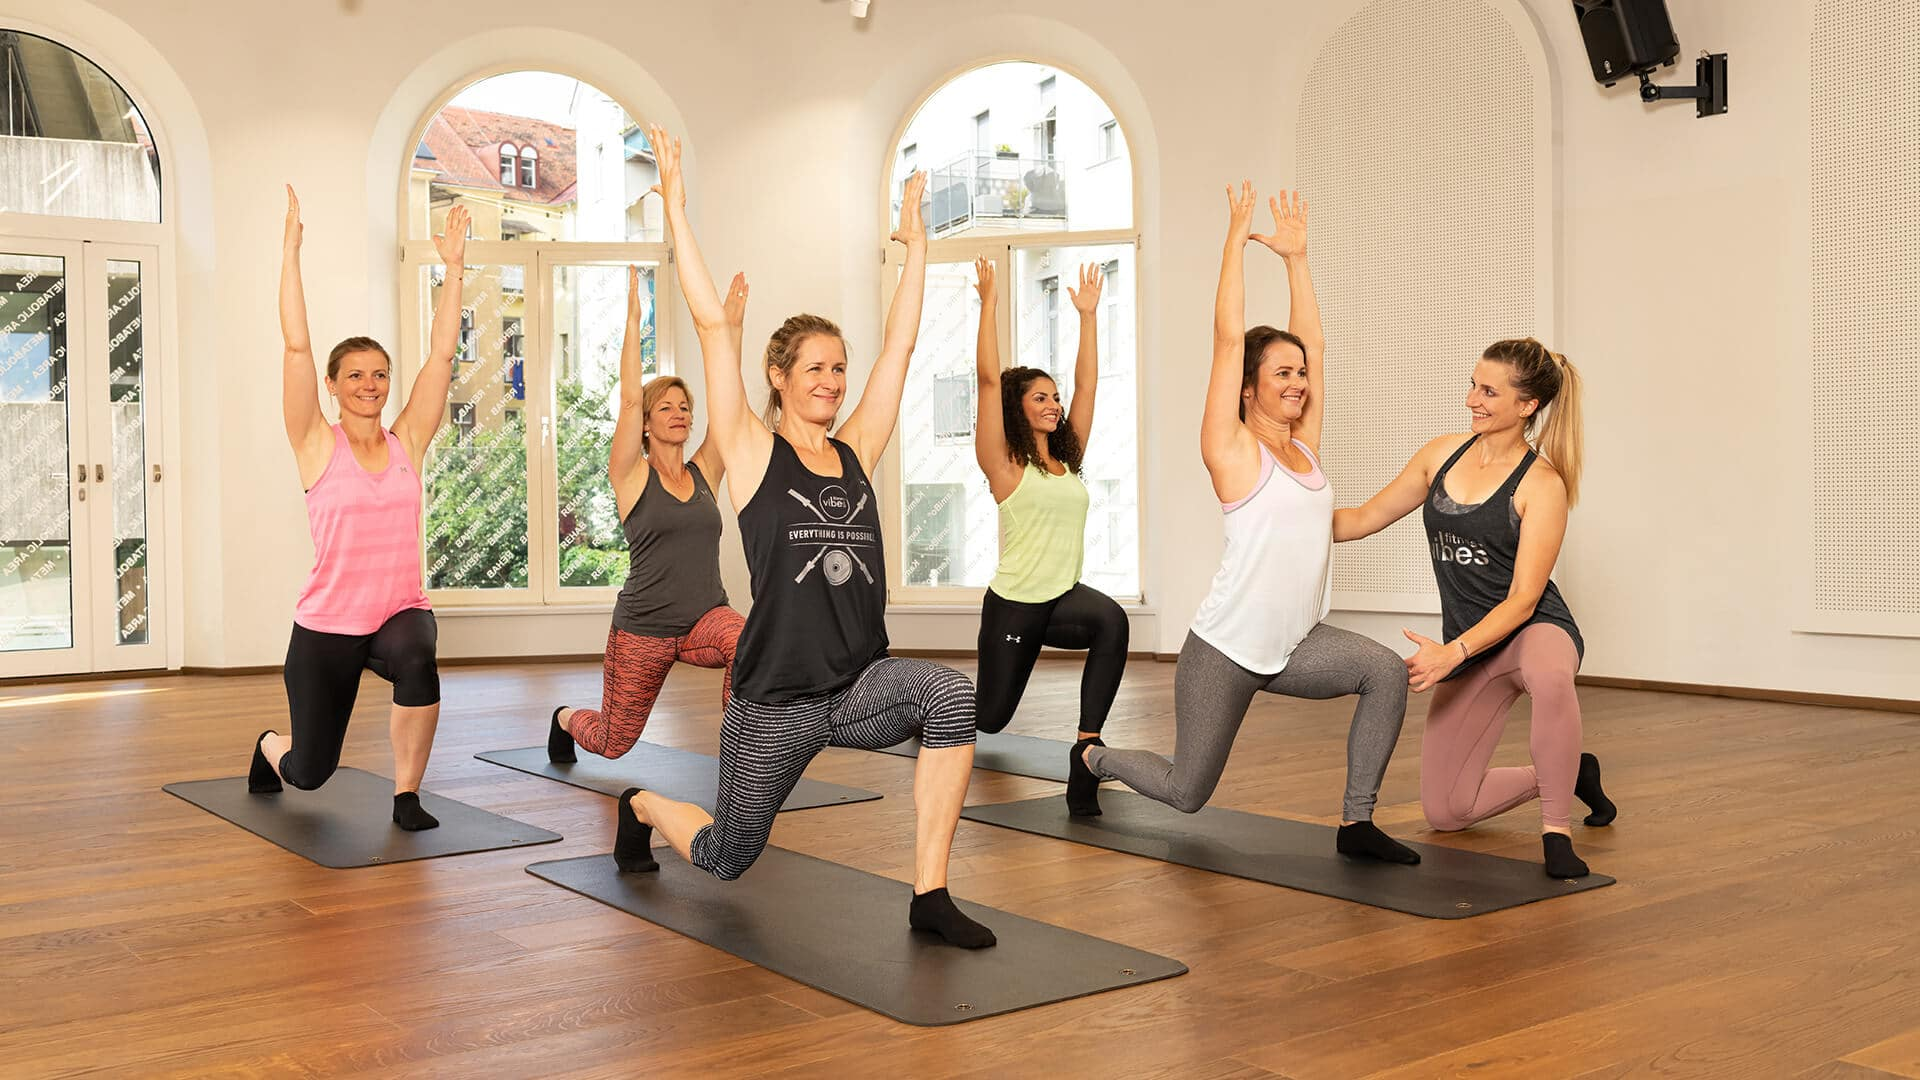 gruppenkurse-group-fitness-vibes